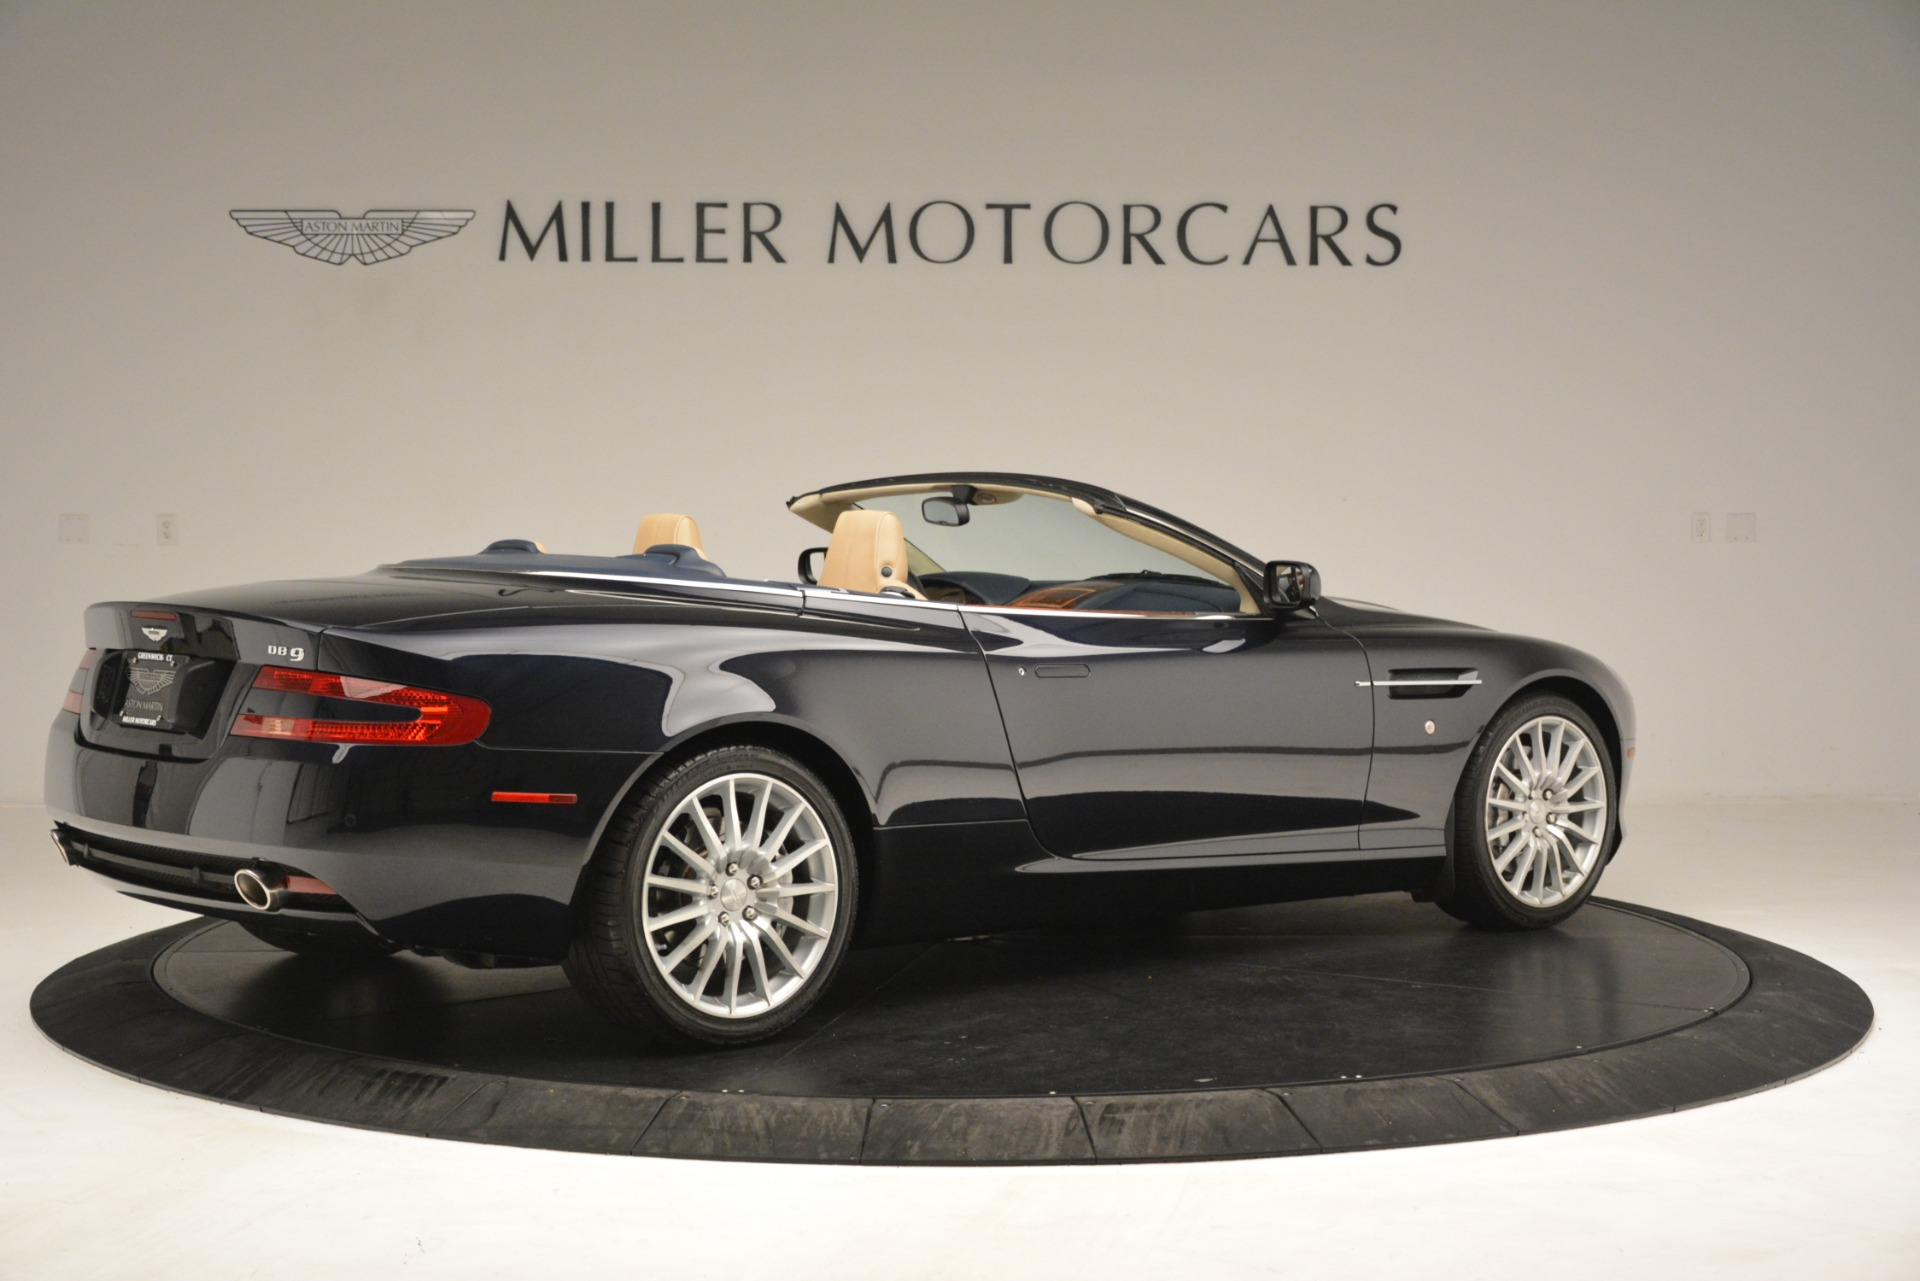 Used 2007 Aston Martin DB9 Convertible For Sale In Westport, CT 3291_p8